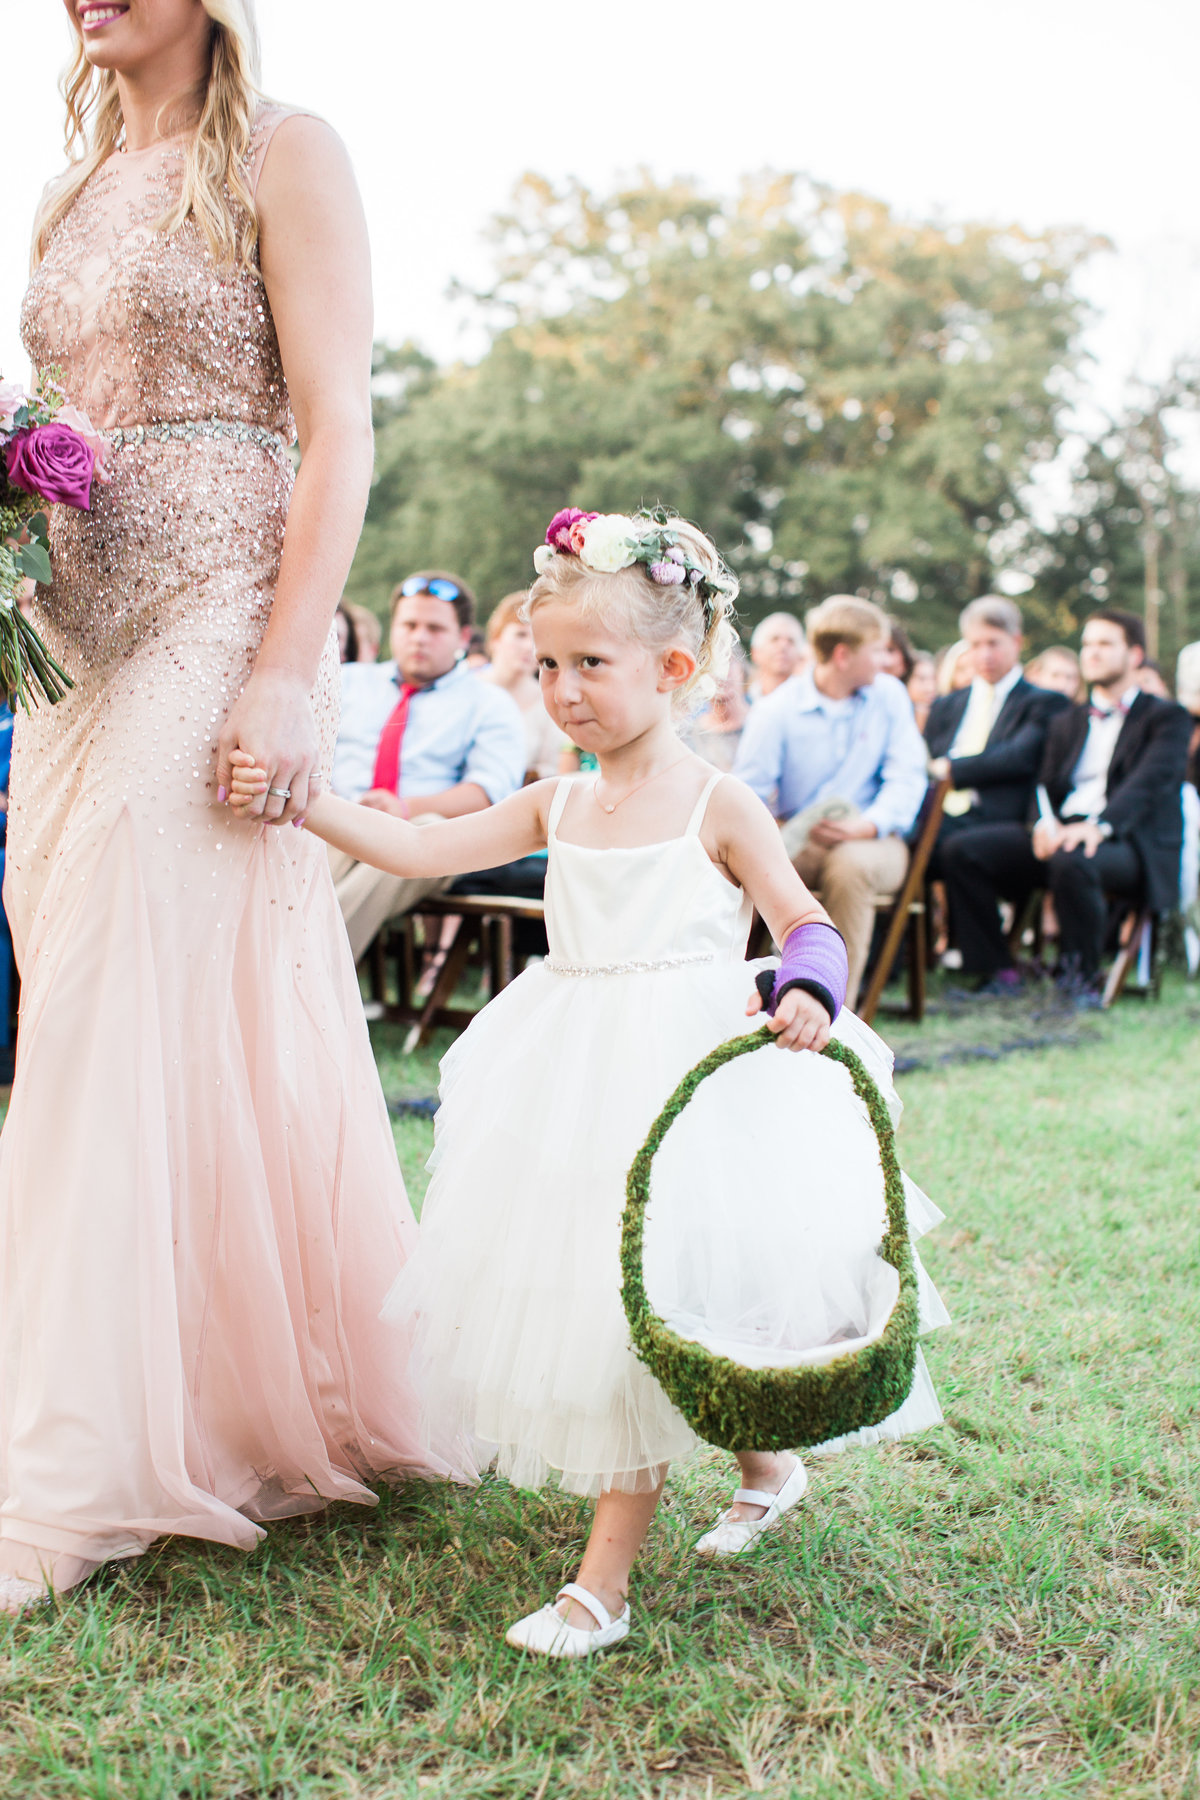 Eden & Will Wedding_Lindsay Ott Photography_Mississippi Wedding Photographer59